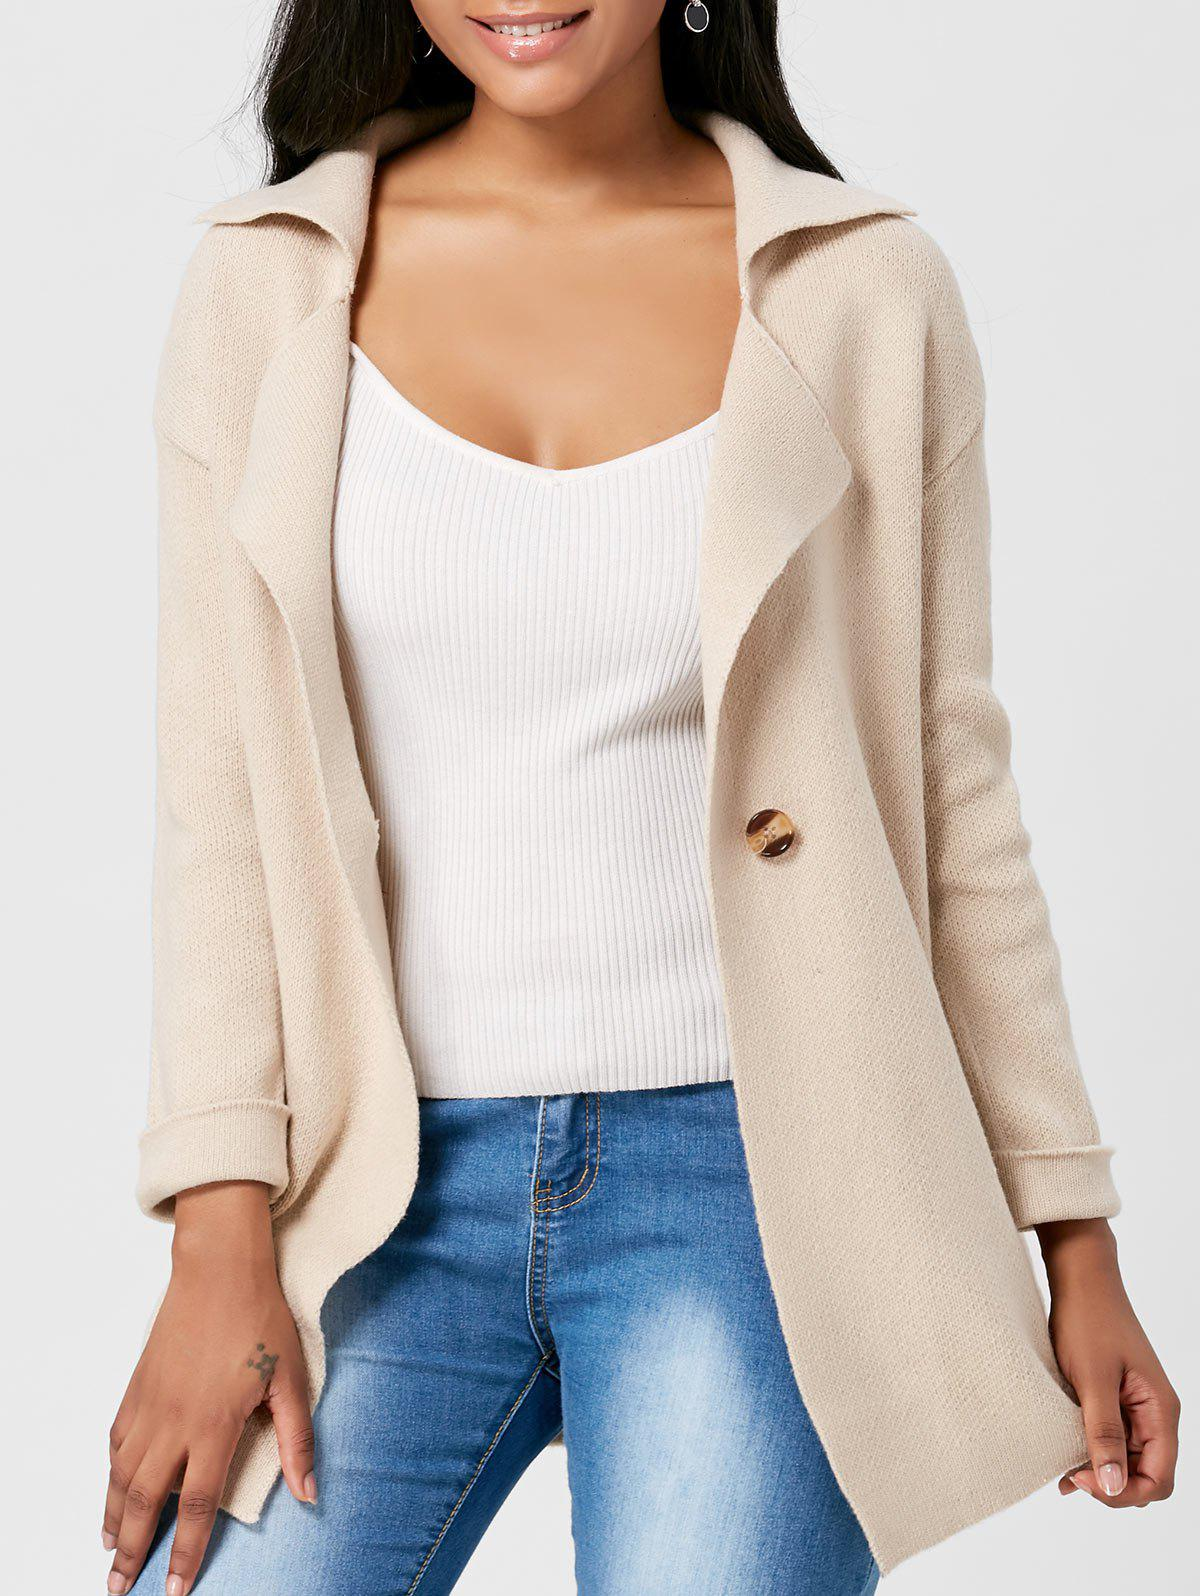 Lapel One Button Knitted CardiganWOMEN<br><br>Size: ONE SIZE; Color: LIGHT CAMEL; Type: Cardigans; Material: Acrylic,Spandex,Viscose; Sleeve Length: Full; Collar: Lapel; Style: Fashion; Pattern Type: Solid; Season: Winter; Weight: 0.6500kg; Package Contents: 1 x Cardigan;